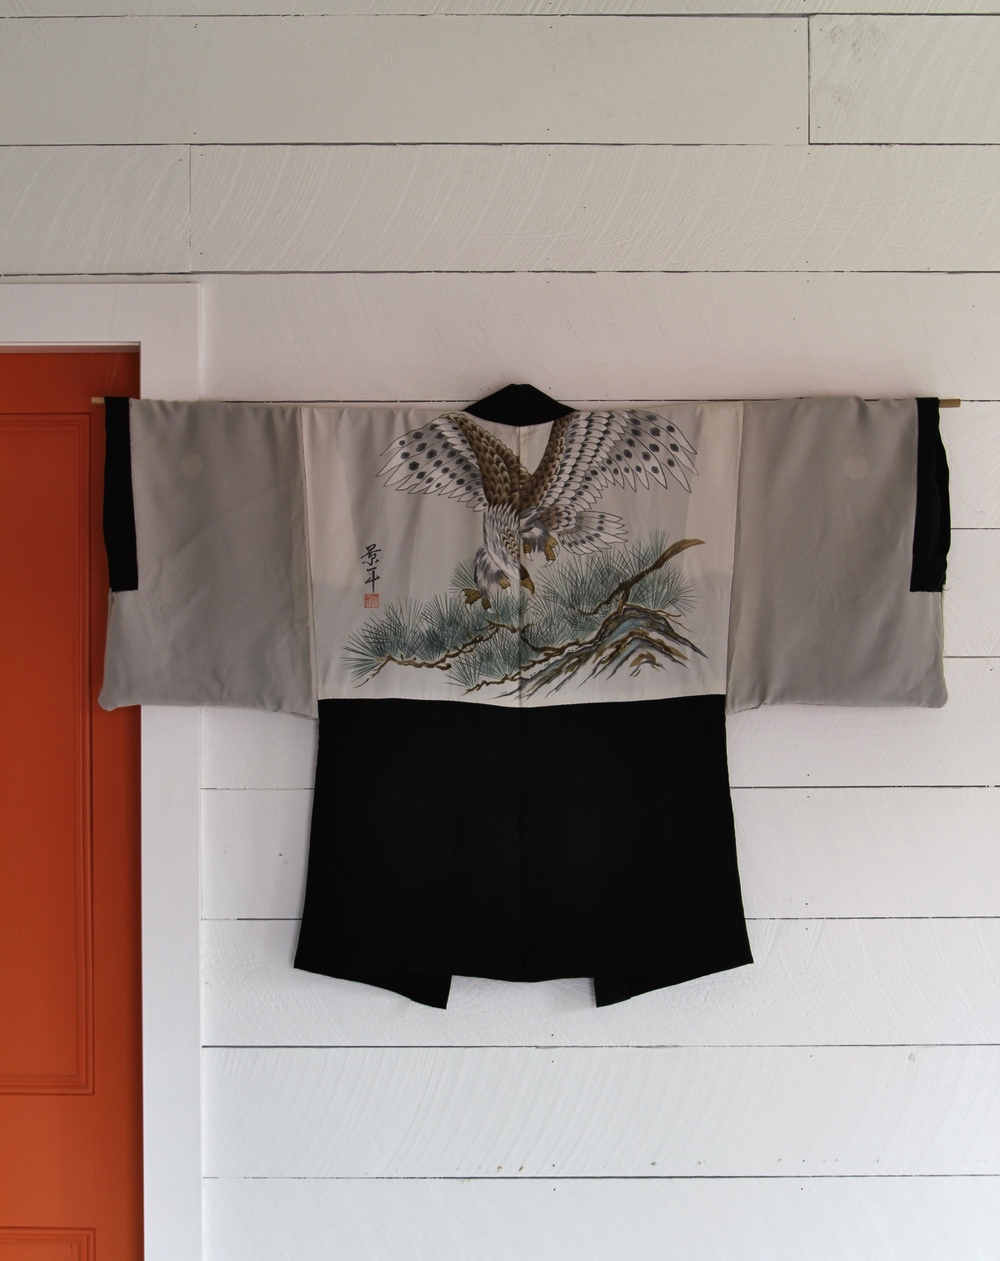 Vintage Silk Kimono (this isn't my kimono but my friend brought it with me)